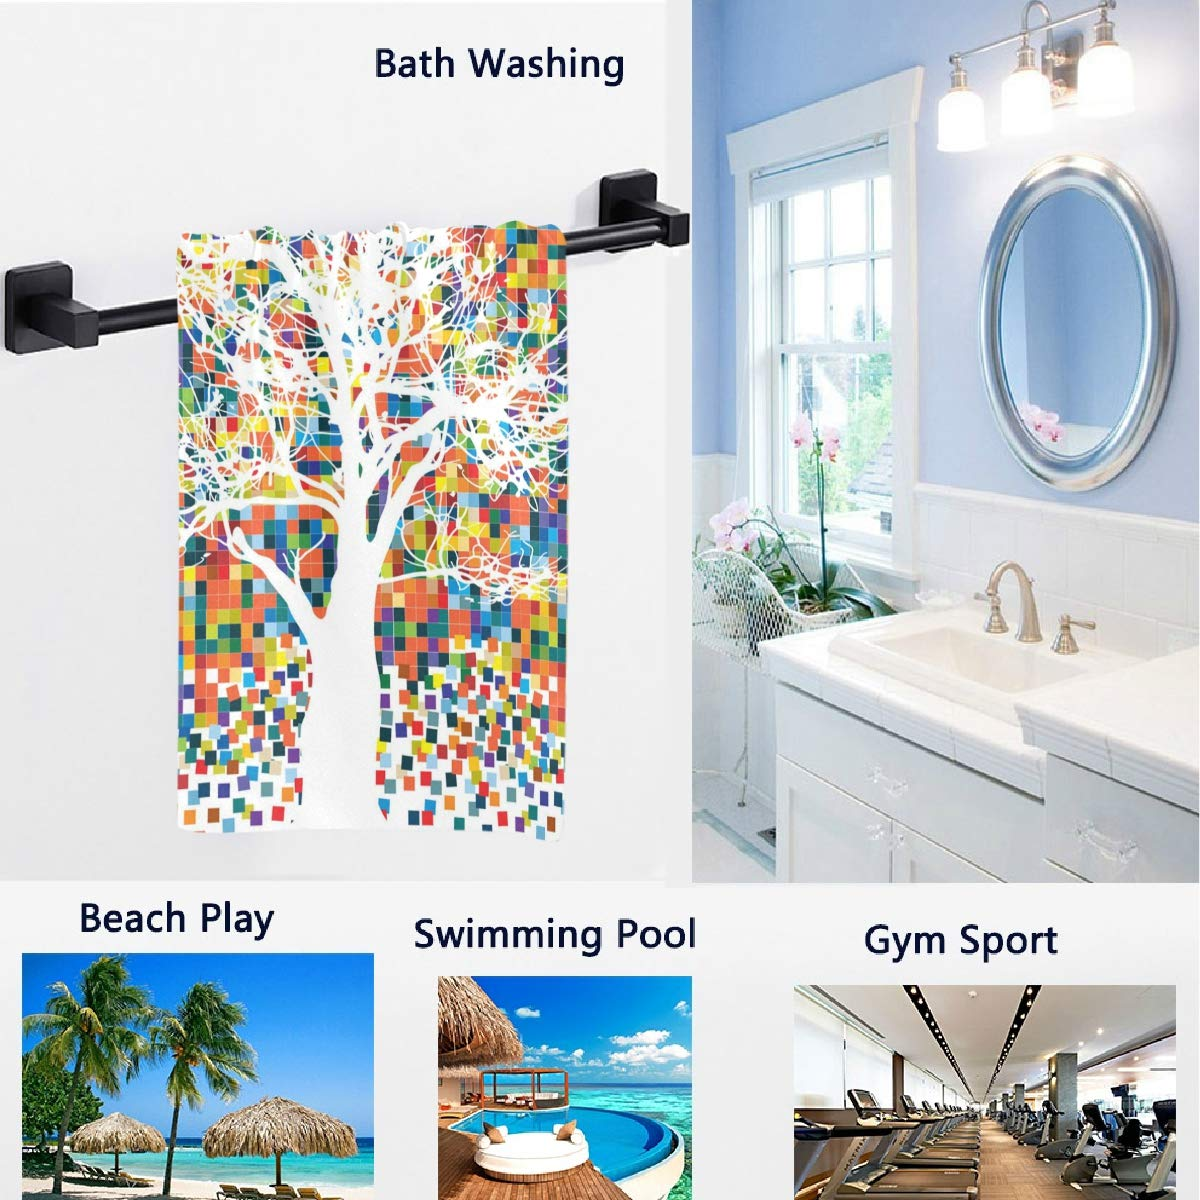 16 x 30 Inches Hotel Gym and Spa Naanle Chic Fresh Lifelike Lemon Leaves Pattern Soft Absorbent Guest Hand Towels Multipurpose for Bathroom